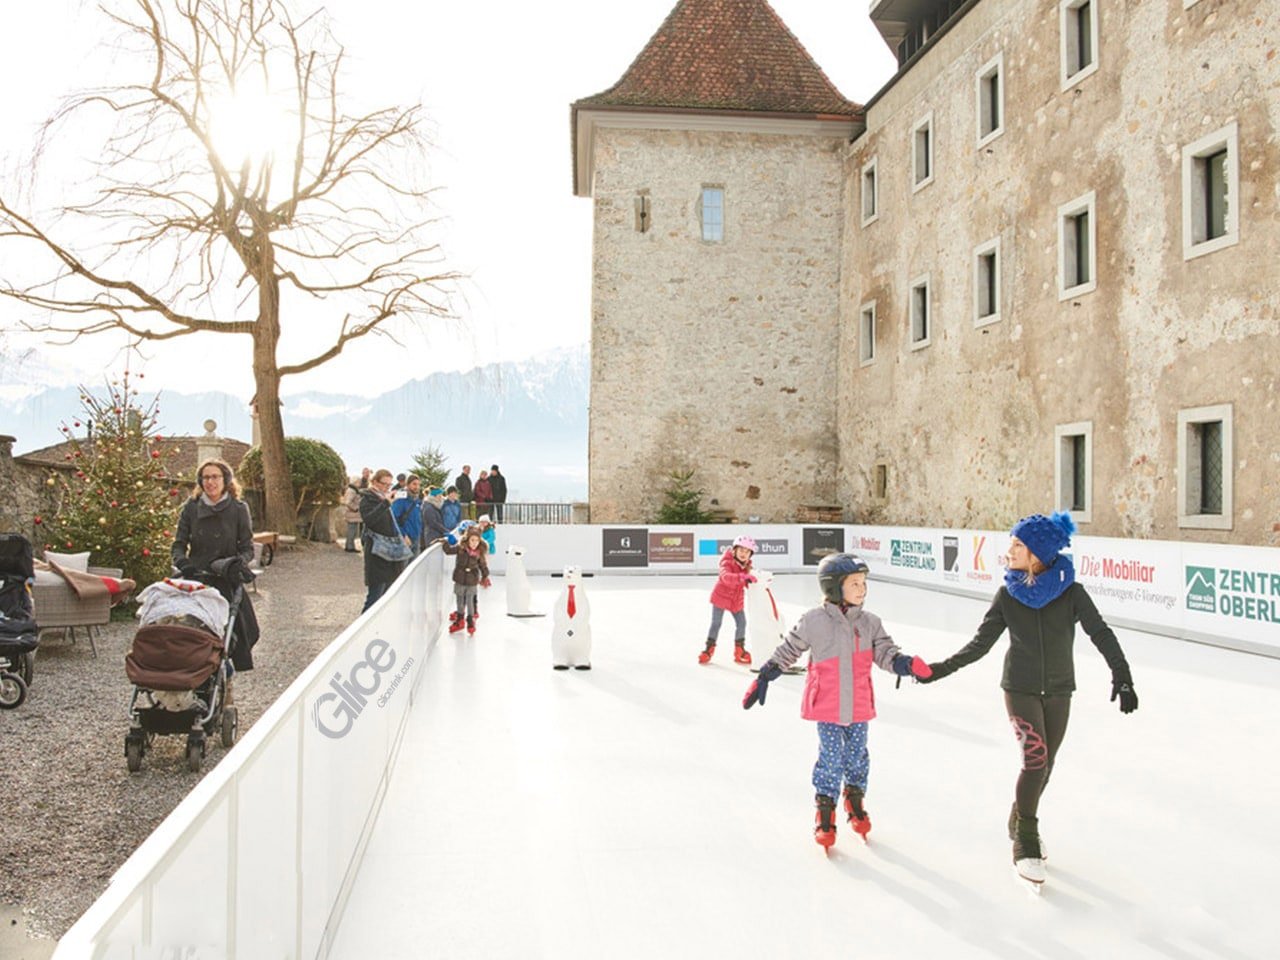 Christmas skating on synthetic ice rink in front of castle